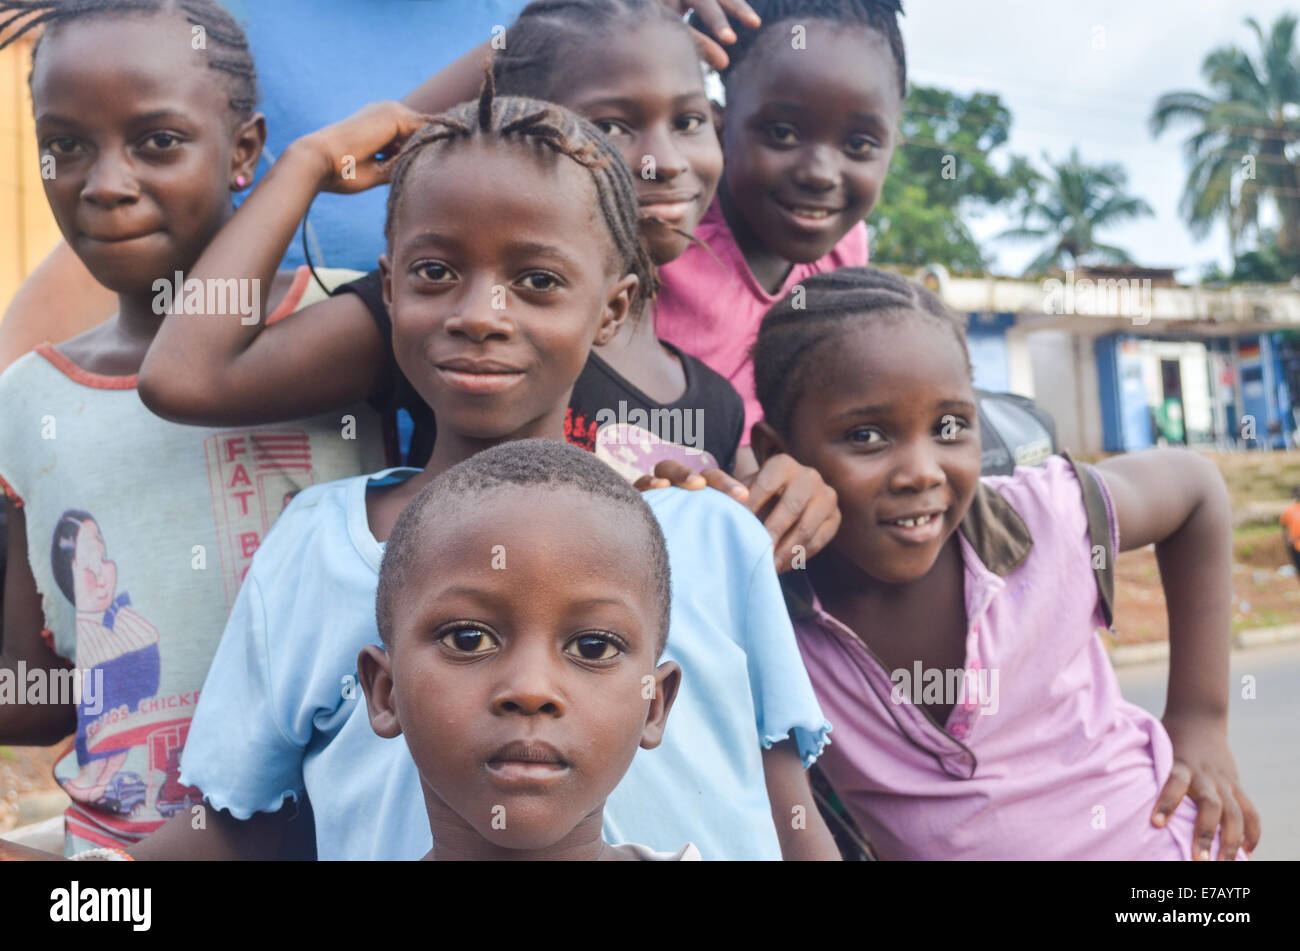 Young girls in the streets of Freetown, Sierra Leone, Africa - Stock Image